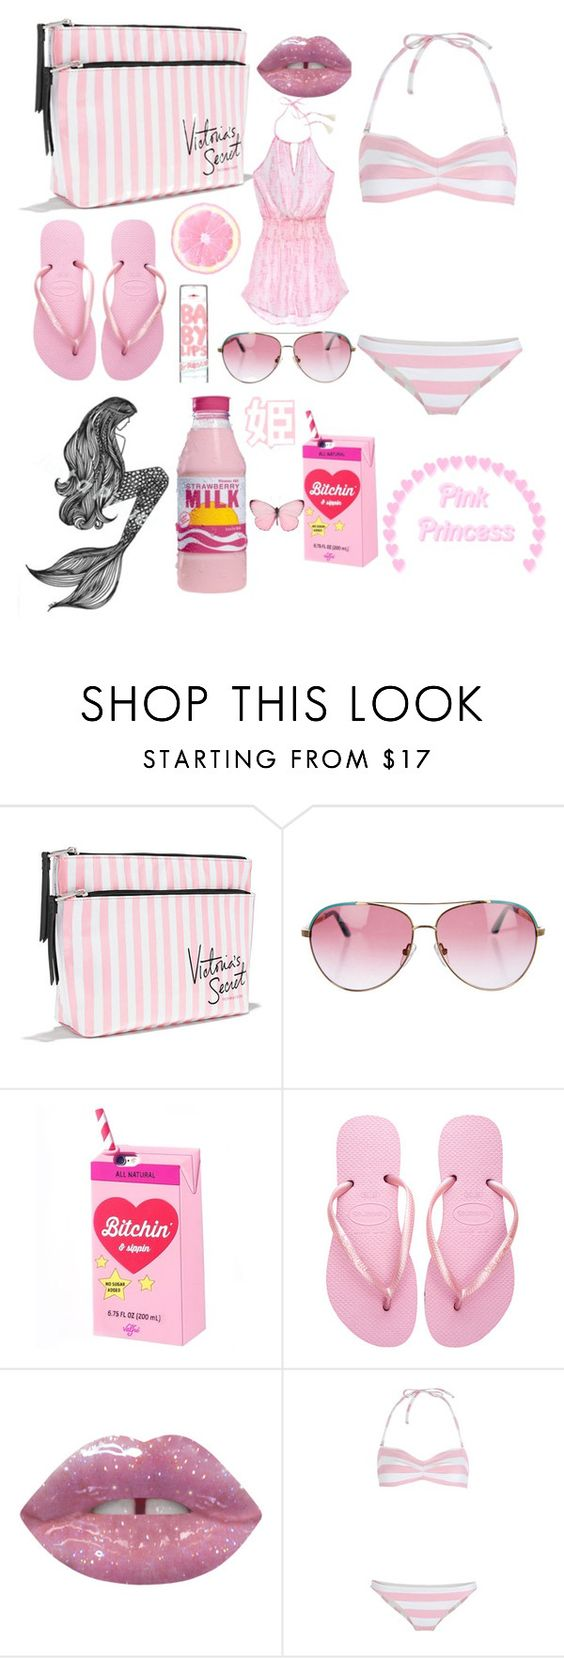 """""""princess pt 37 (beach day)"""" by lolurnotlukehemmingss ❤ liked on Polyvore featuring Suarez, Victoria's Secret, Minnie Rose, Valfré, Havaianas, Maybelline and Solid & Striped"""